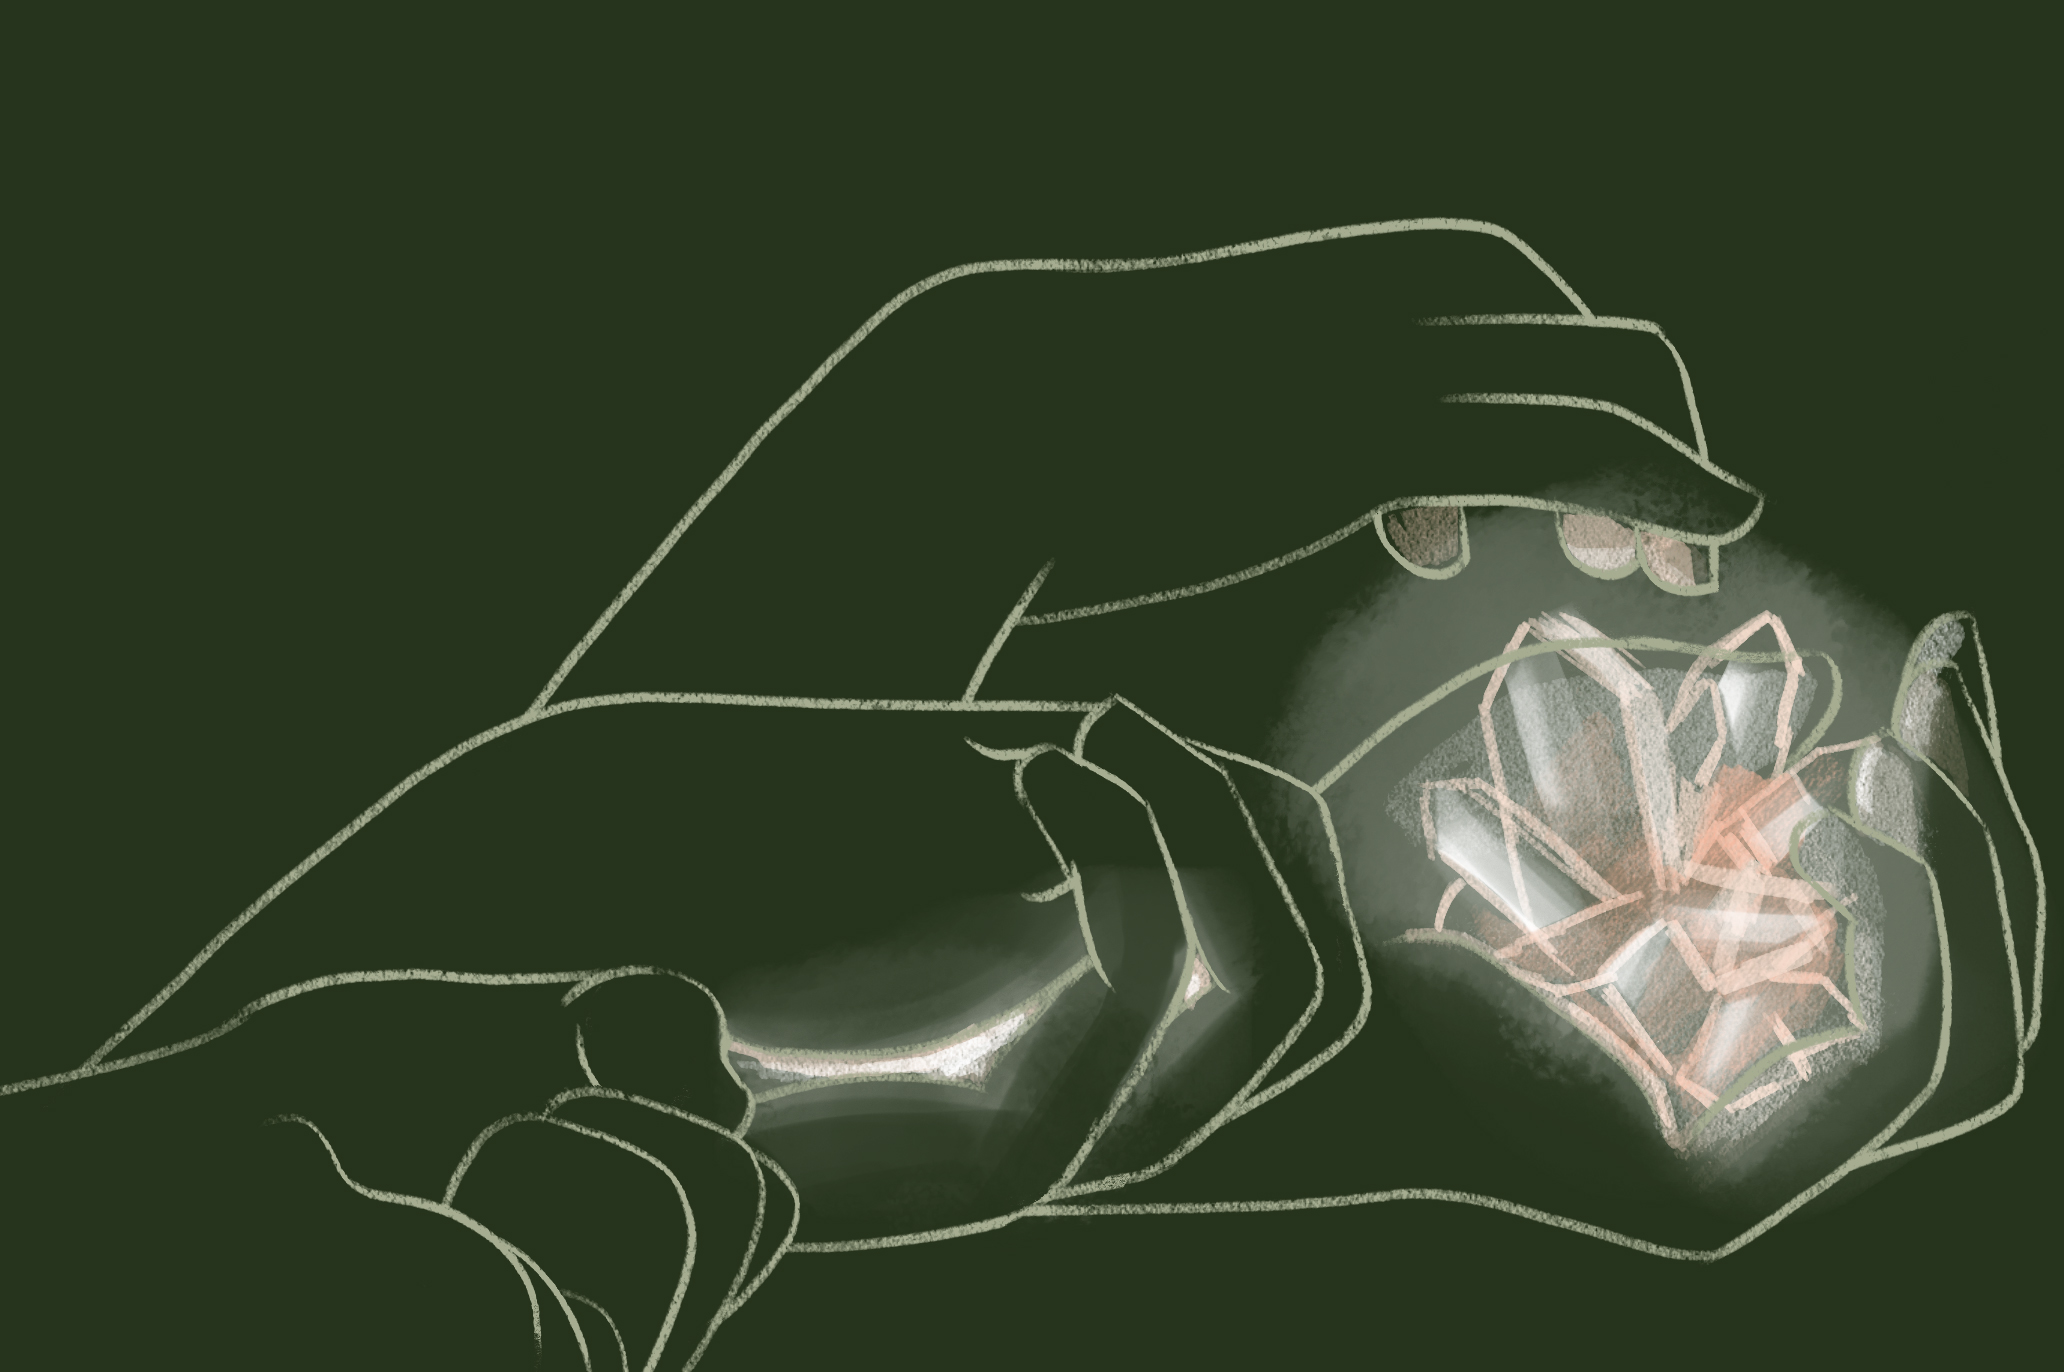 Image: An illustration of a three pairs of hands in progression from closed, slightly open, to fully open revealing many white, glowing crystals. The background is plain dark green and the lines of the hands are drawn in  white. Illustration by Kiki Dupont.